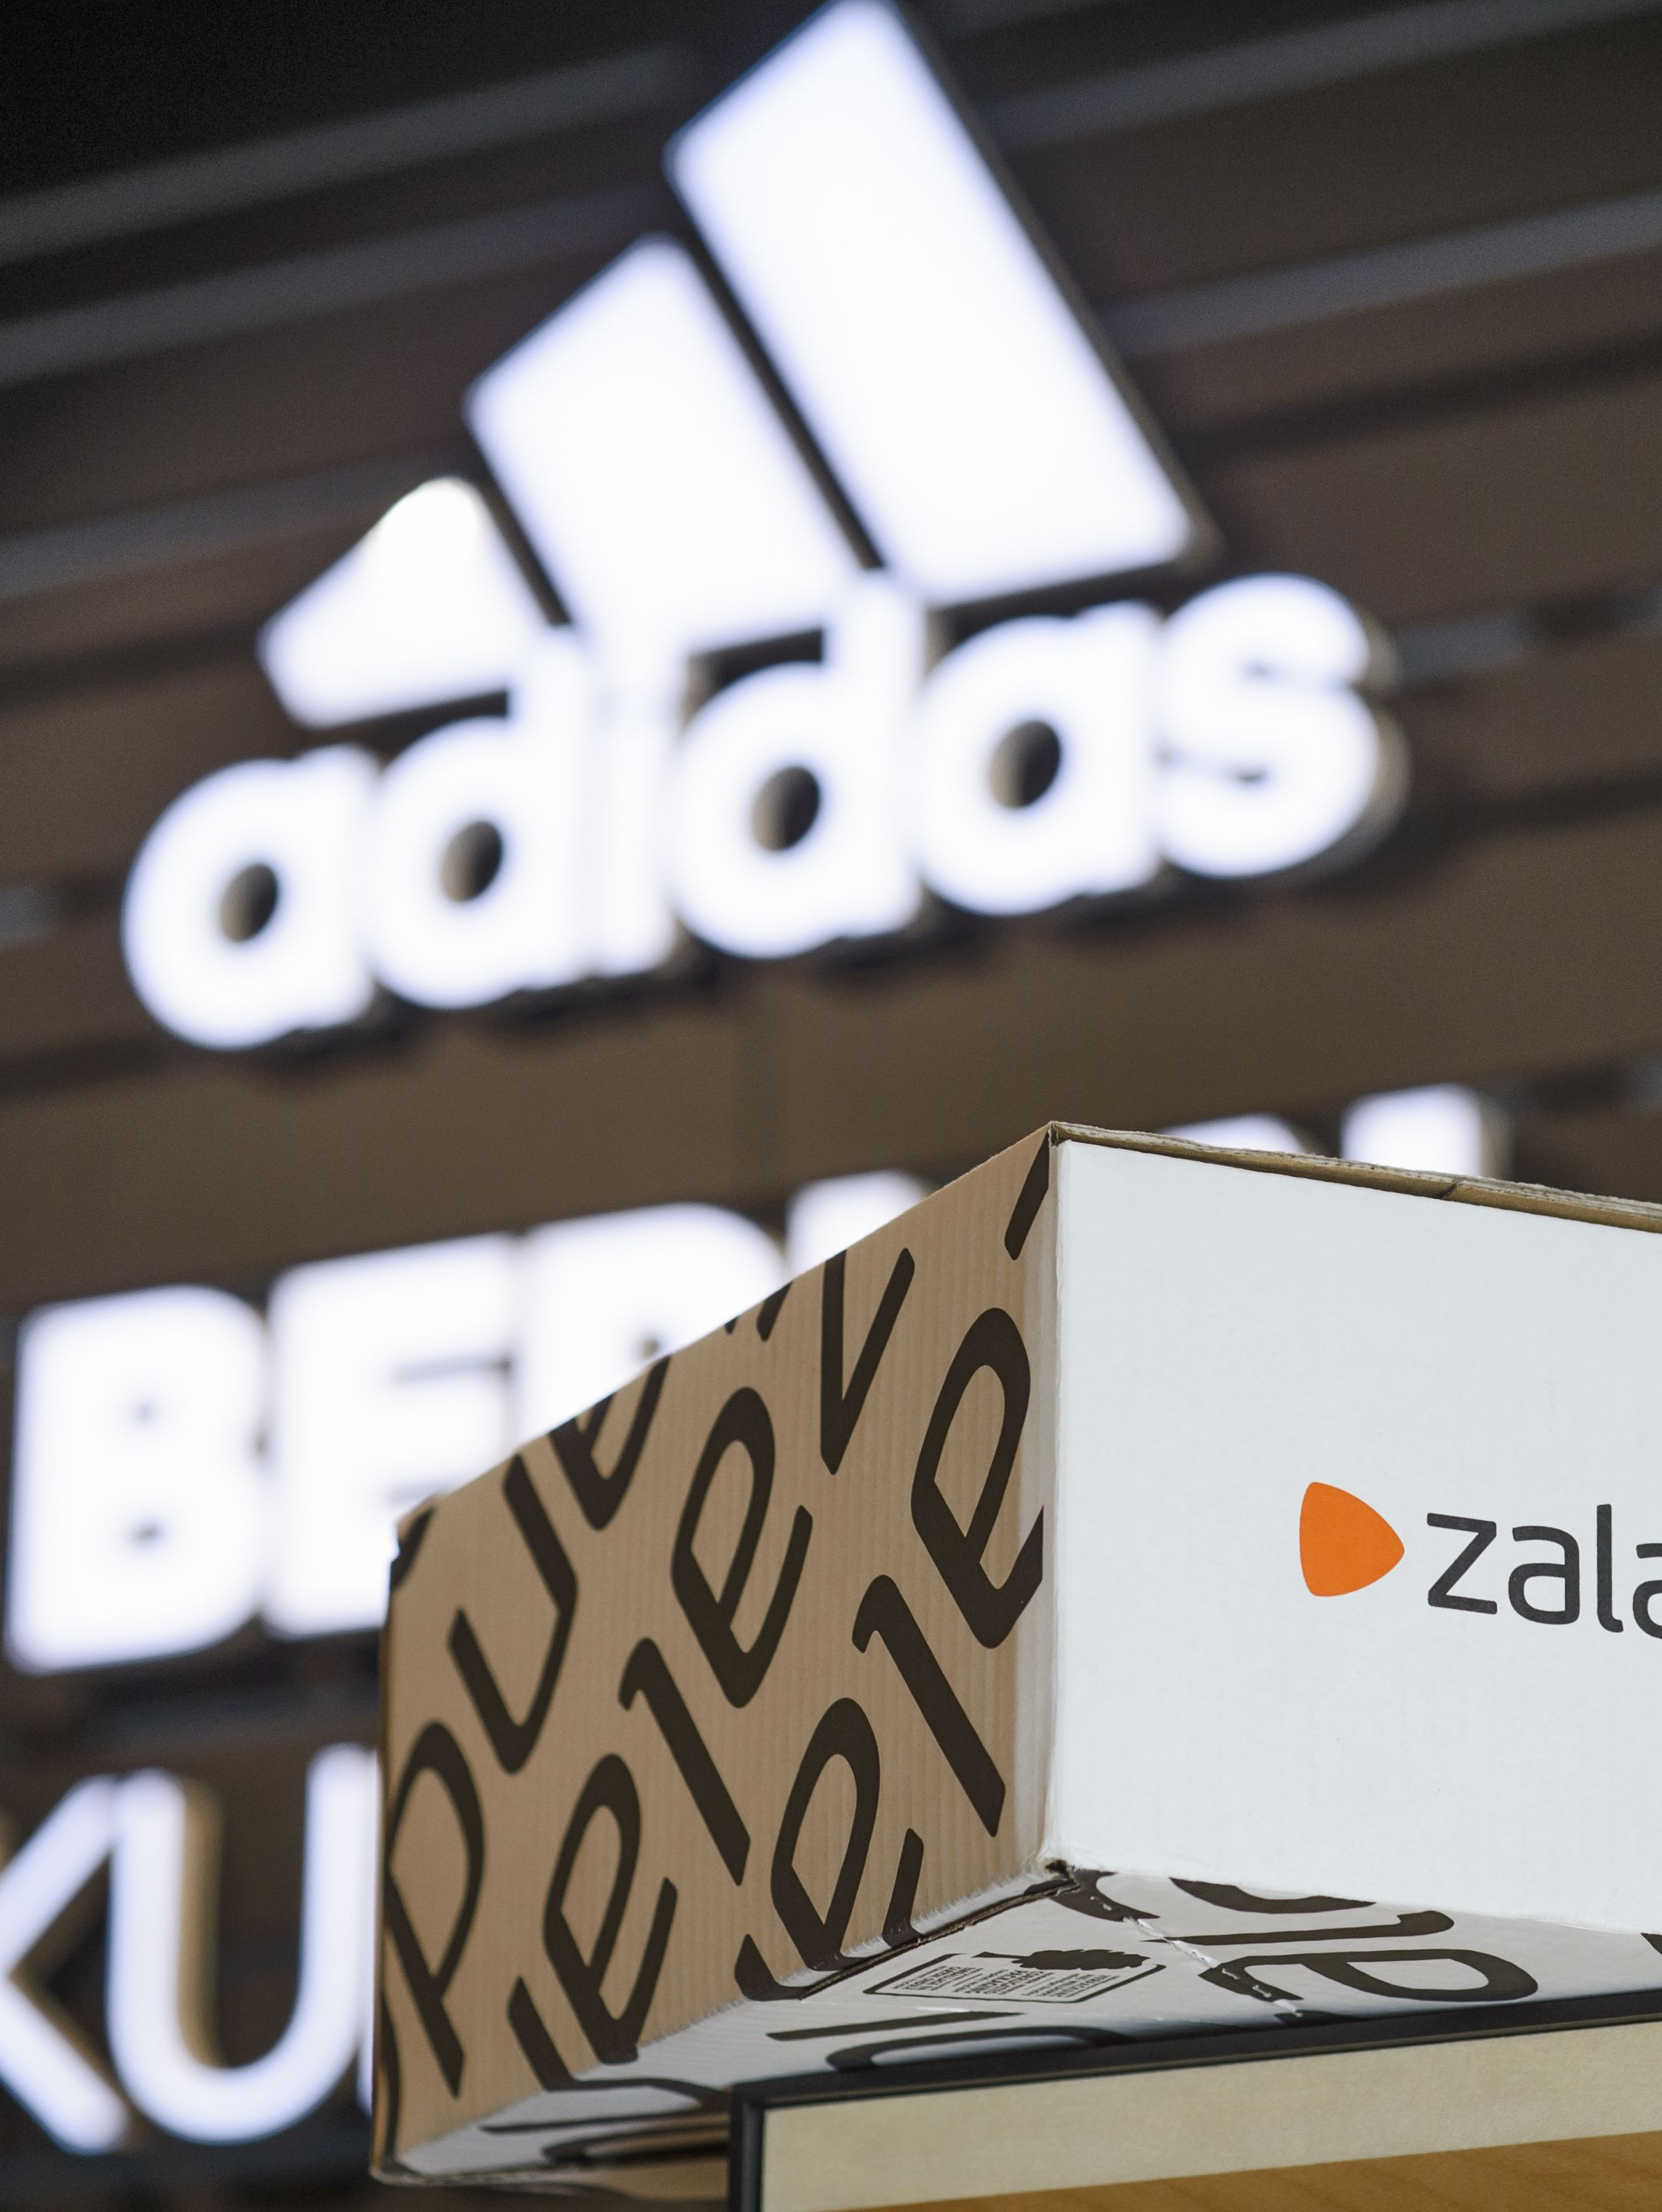 Zalando invests into offline business